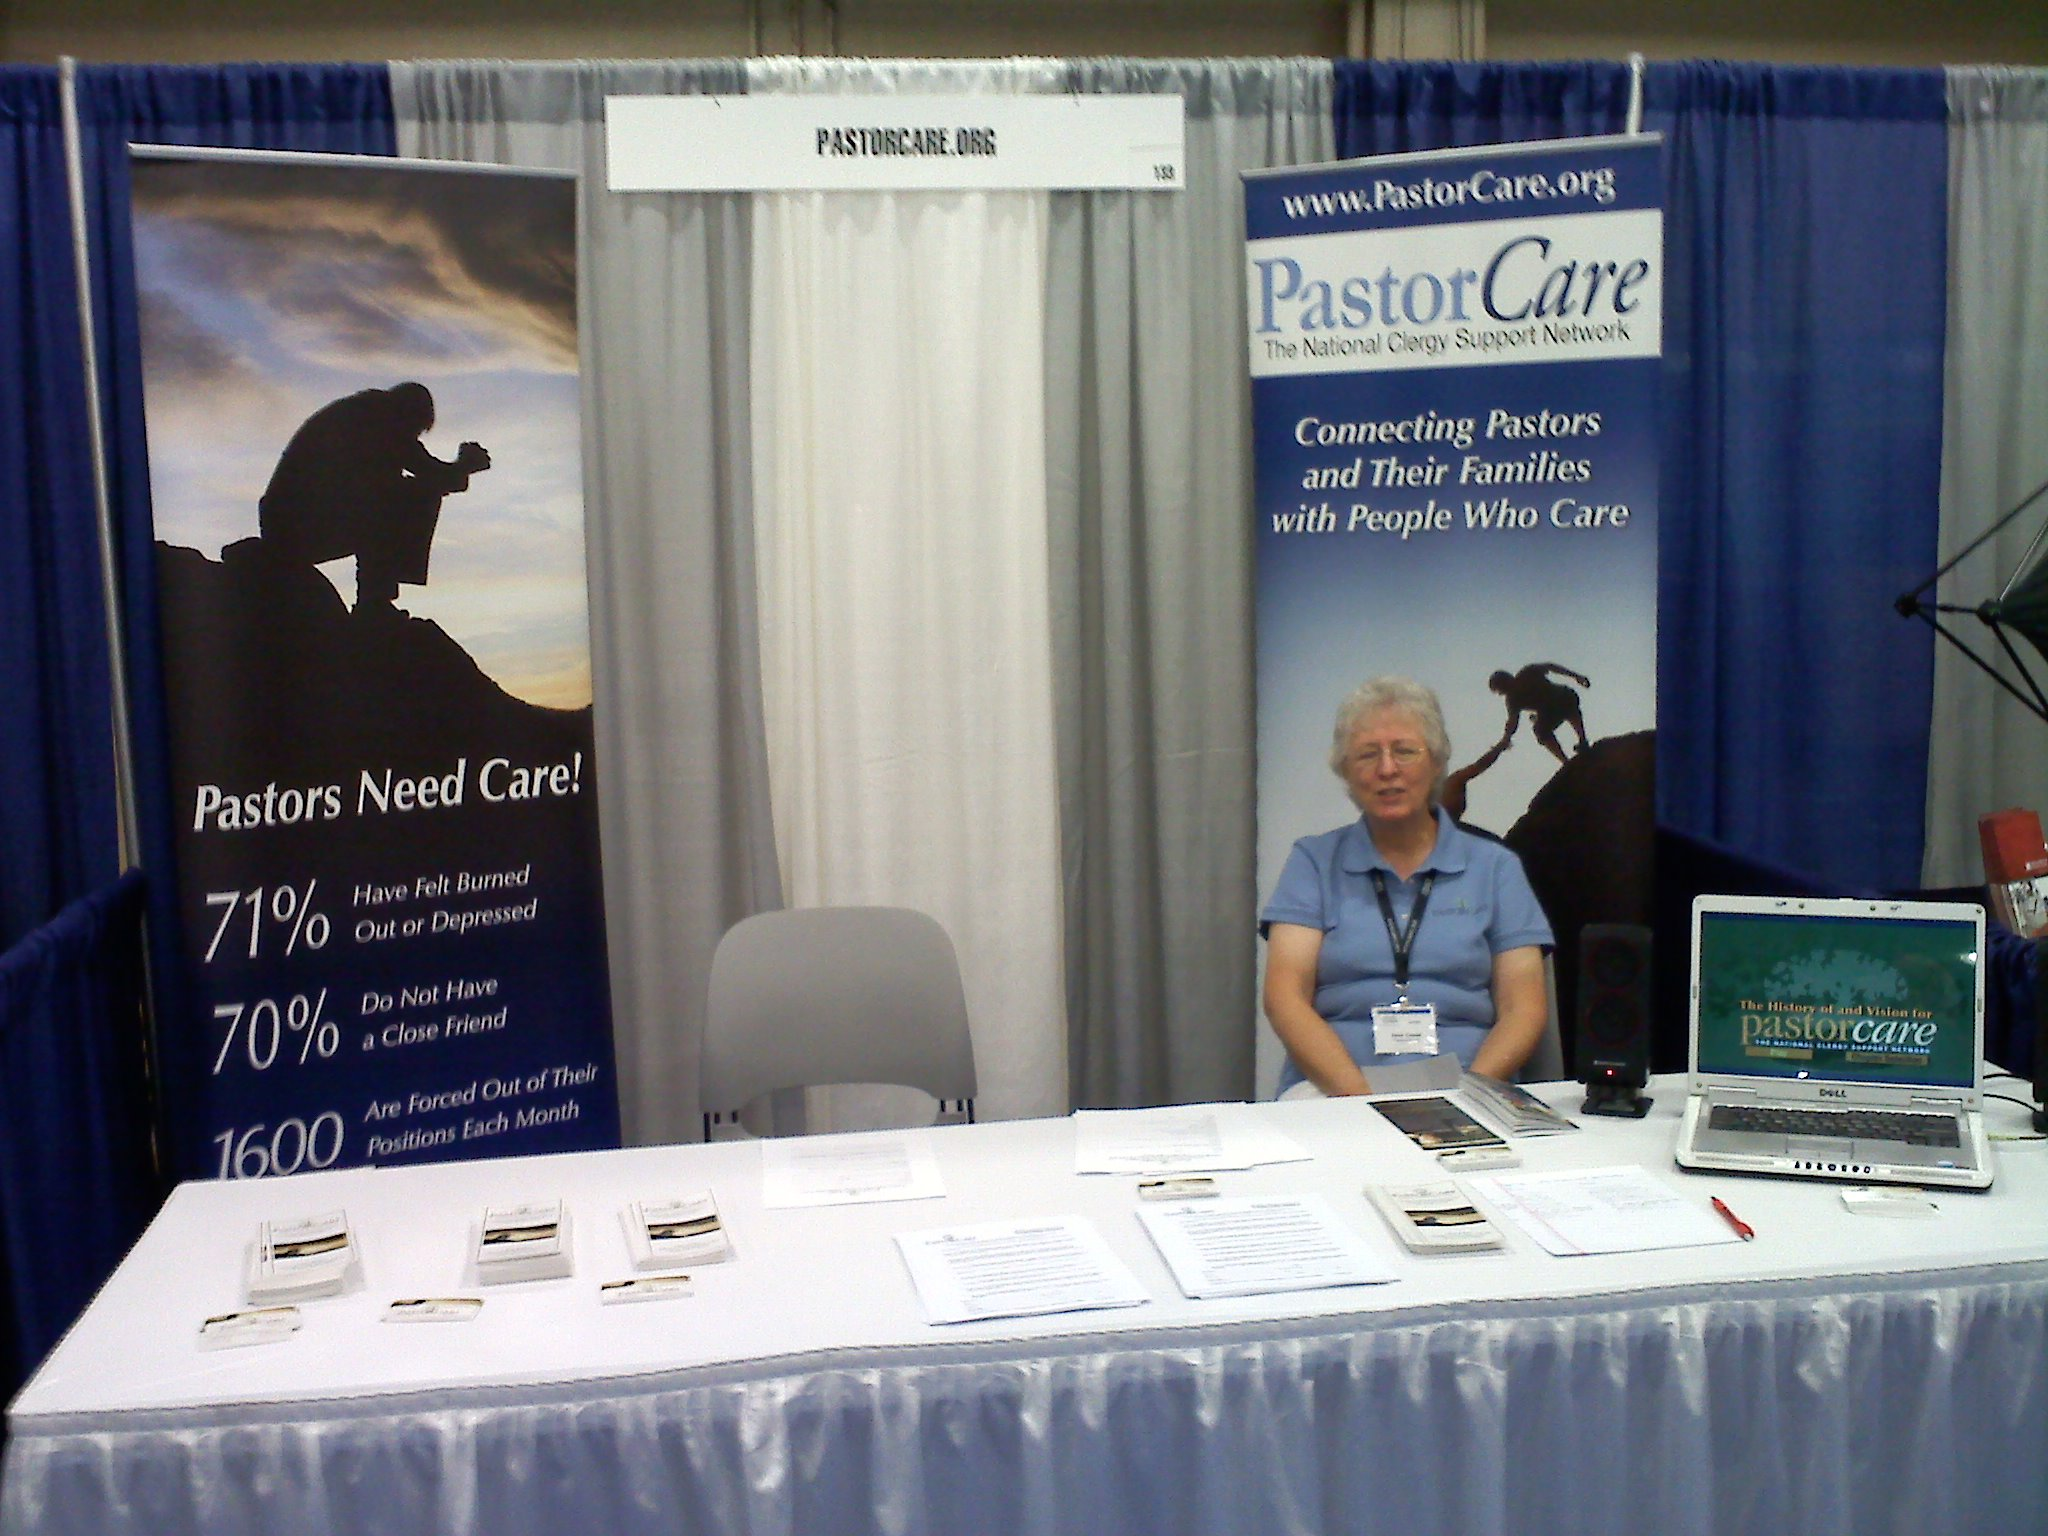 At AACC in Nashville, TN